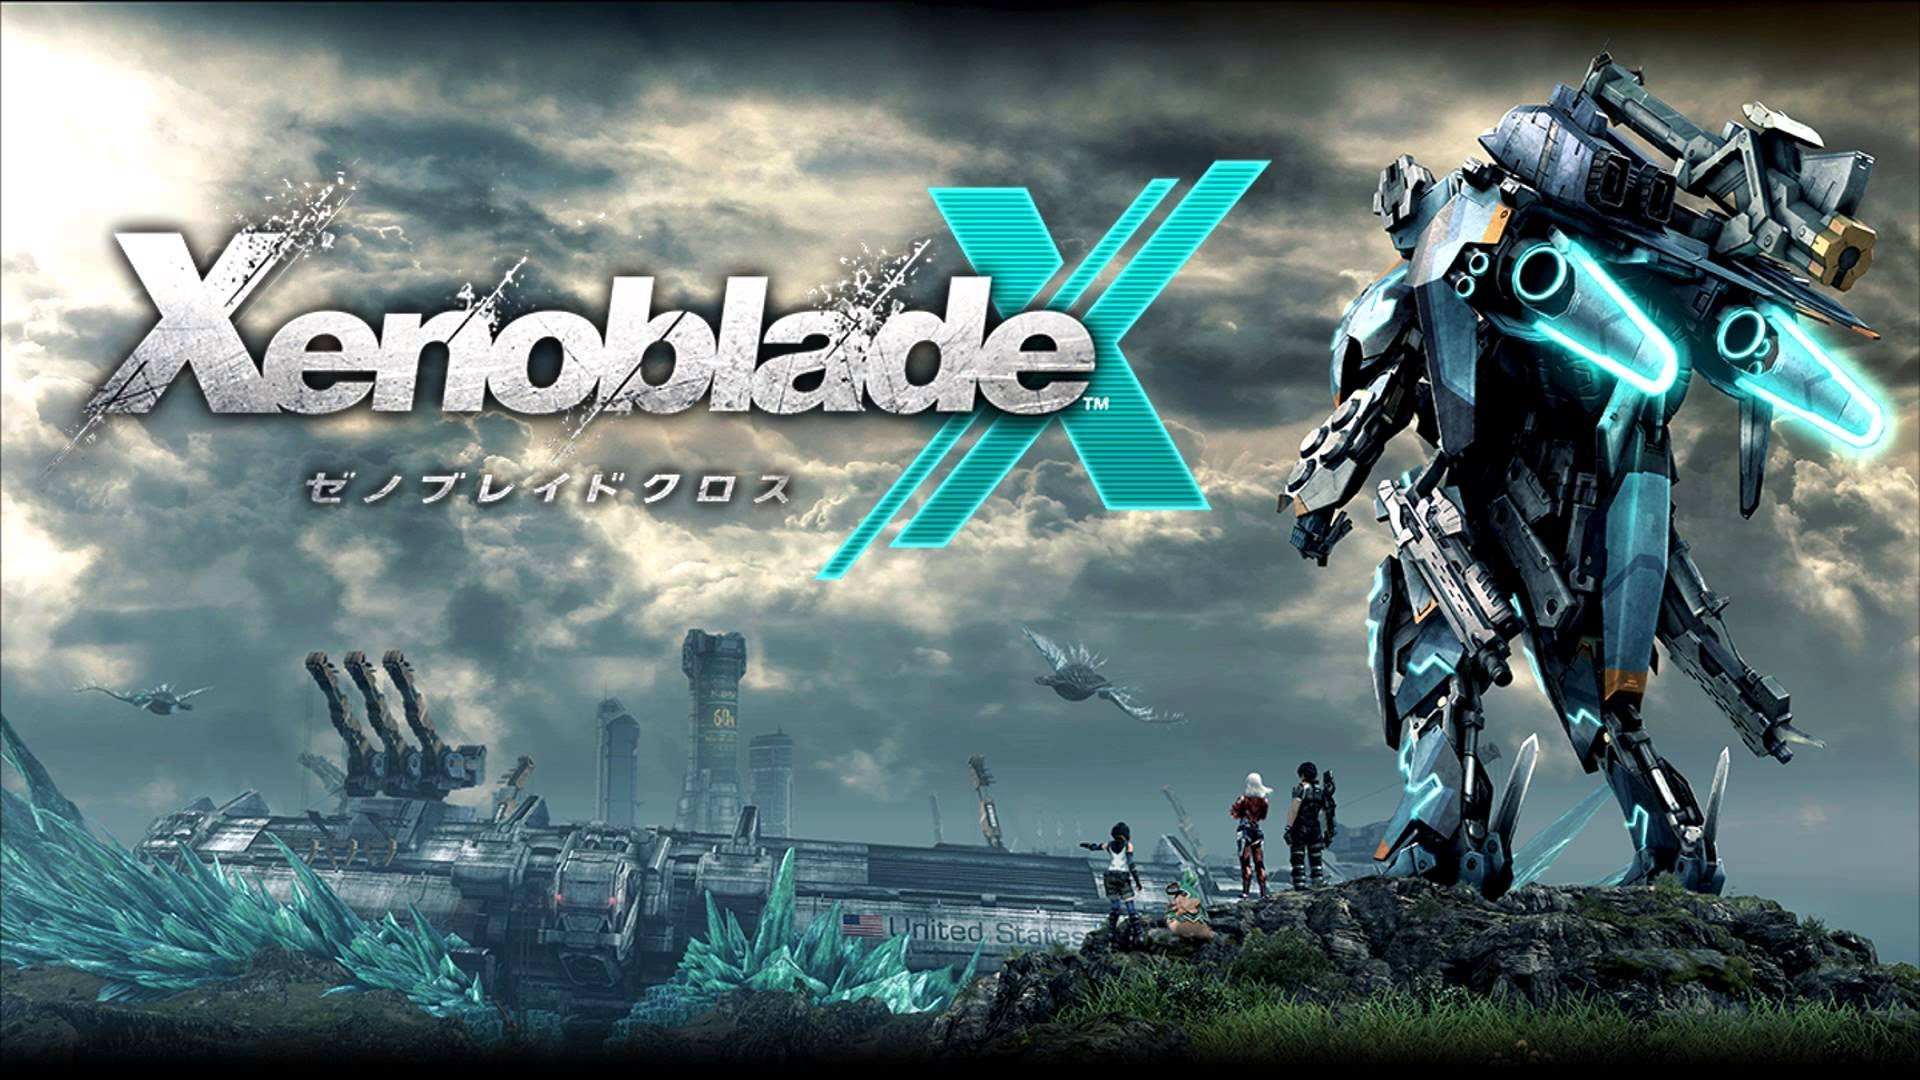 Xenoblade Chronicles X Open World Bigger Than Skyrim Fallout 4 Witcher 3 Combined